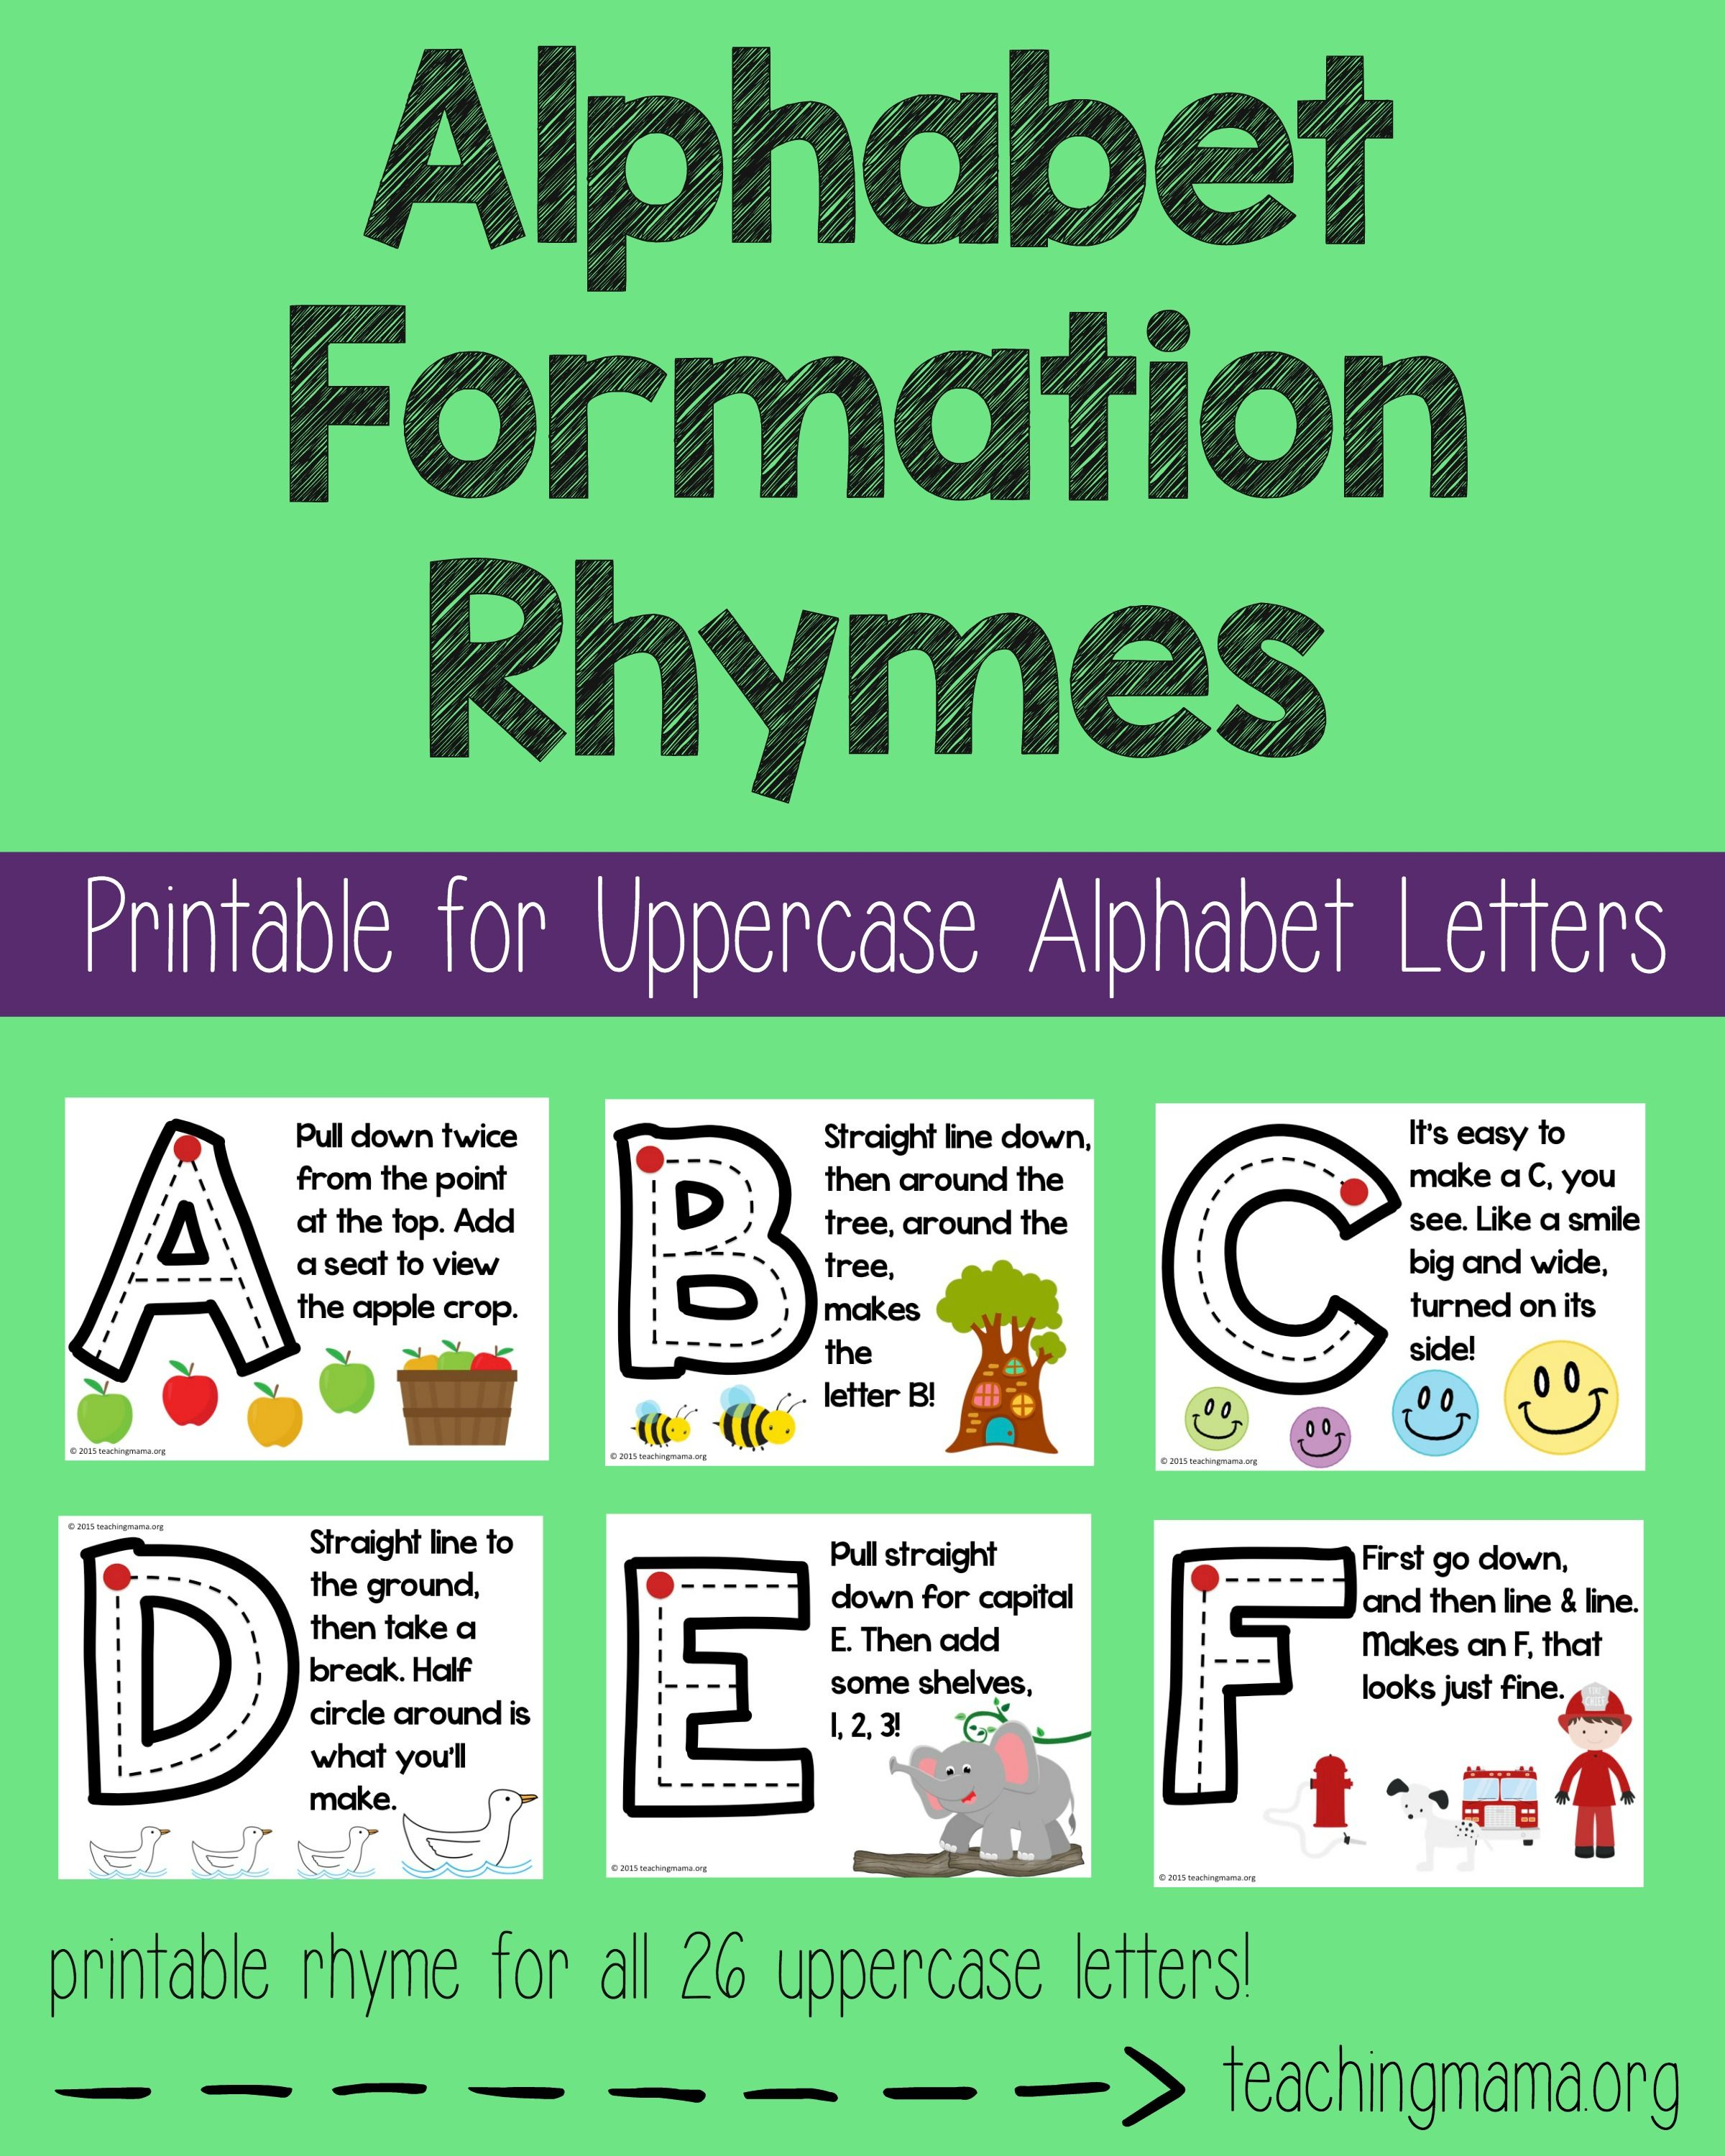 Worksheets List Of Rhyming Words For Kids alphabet formation rhymes rhyming words uppercase and rhymes